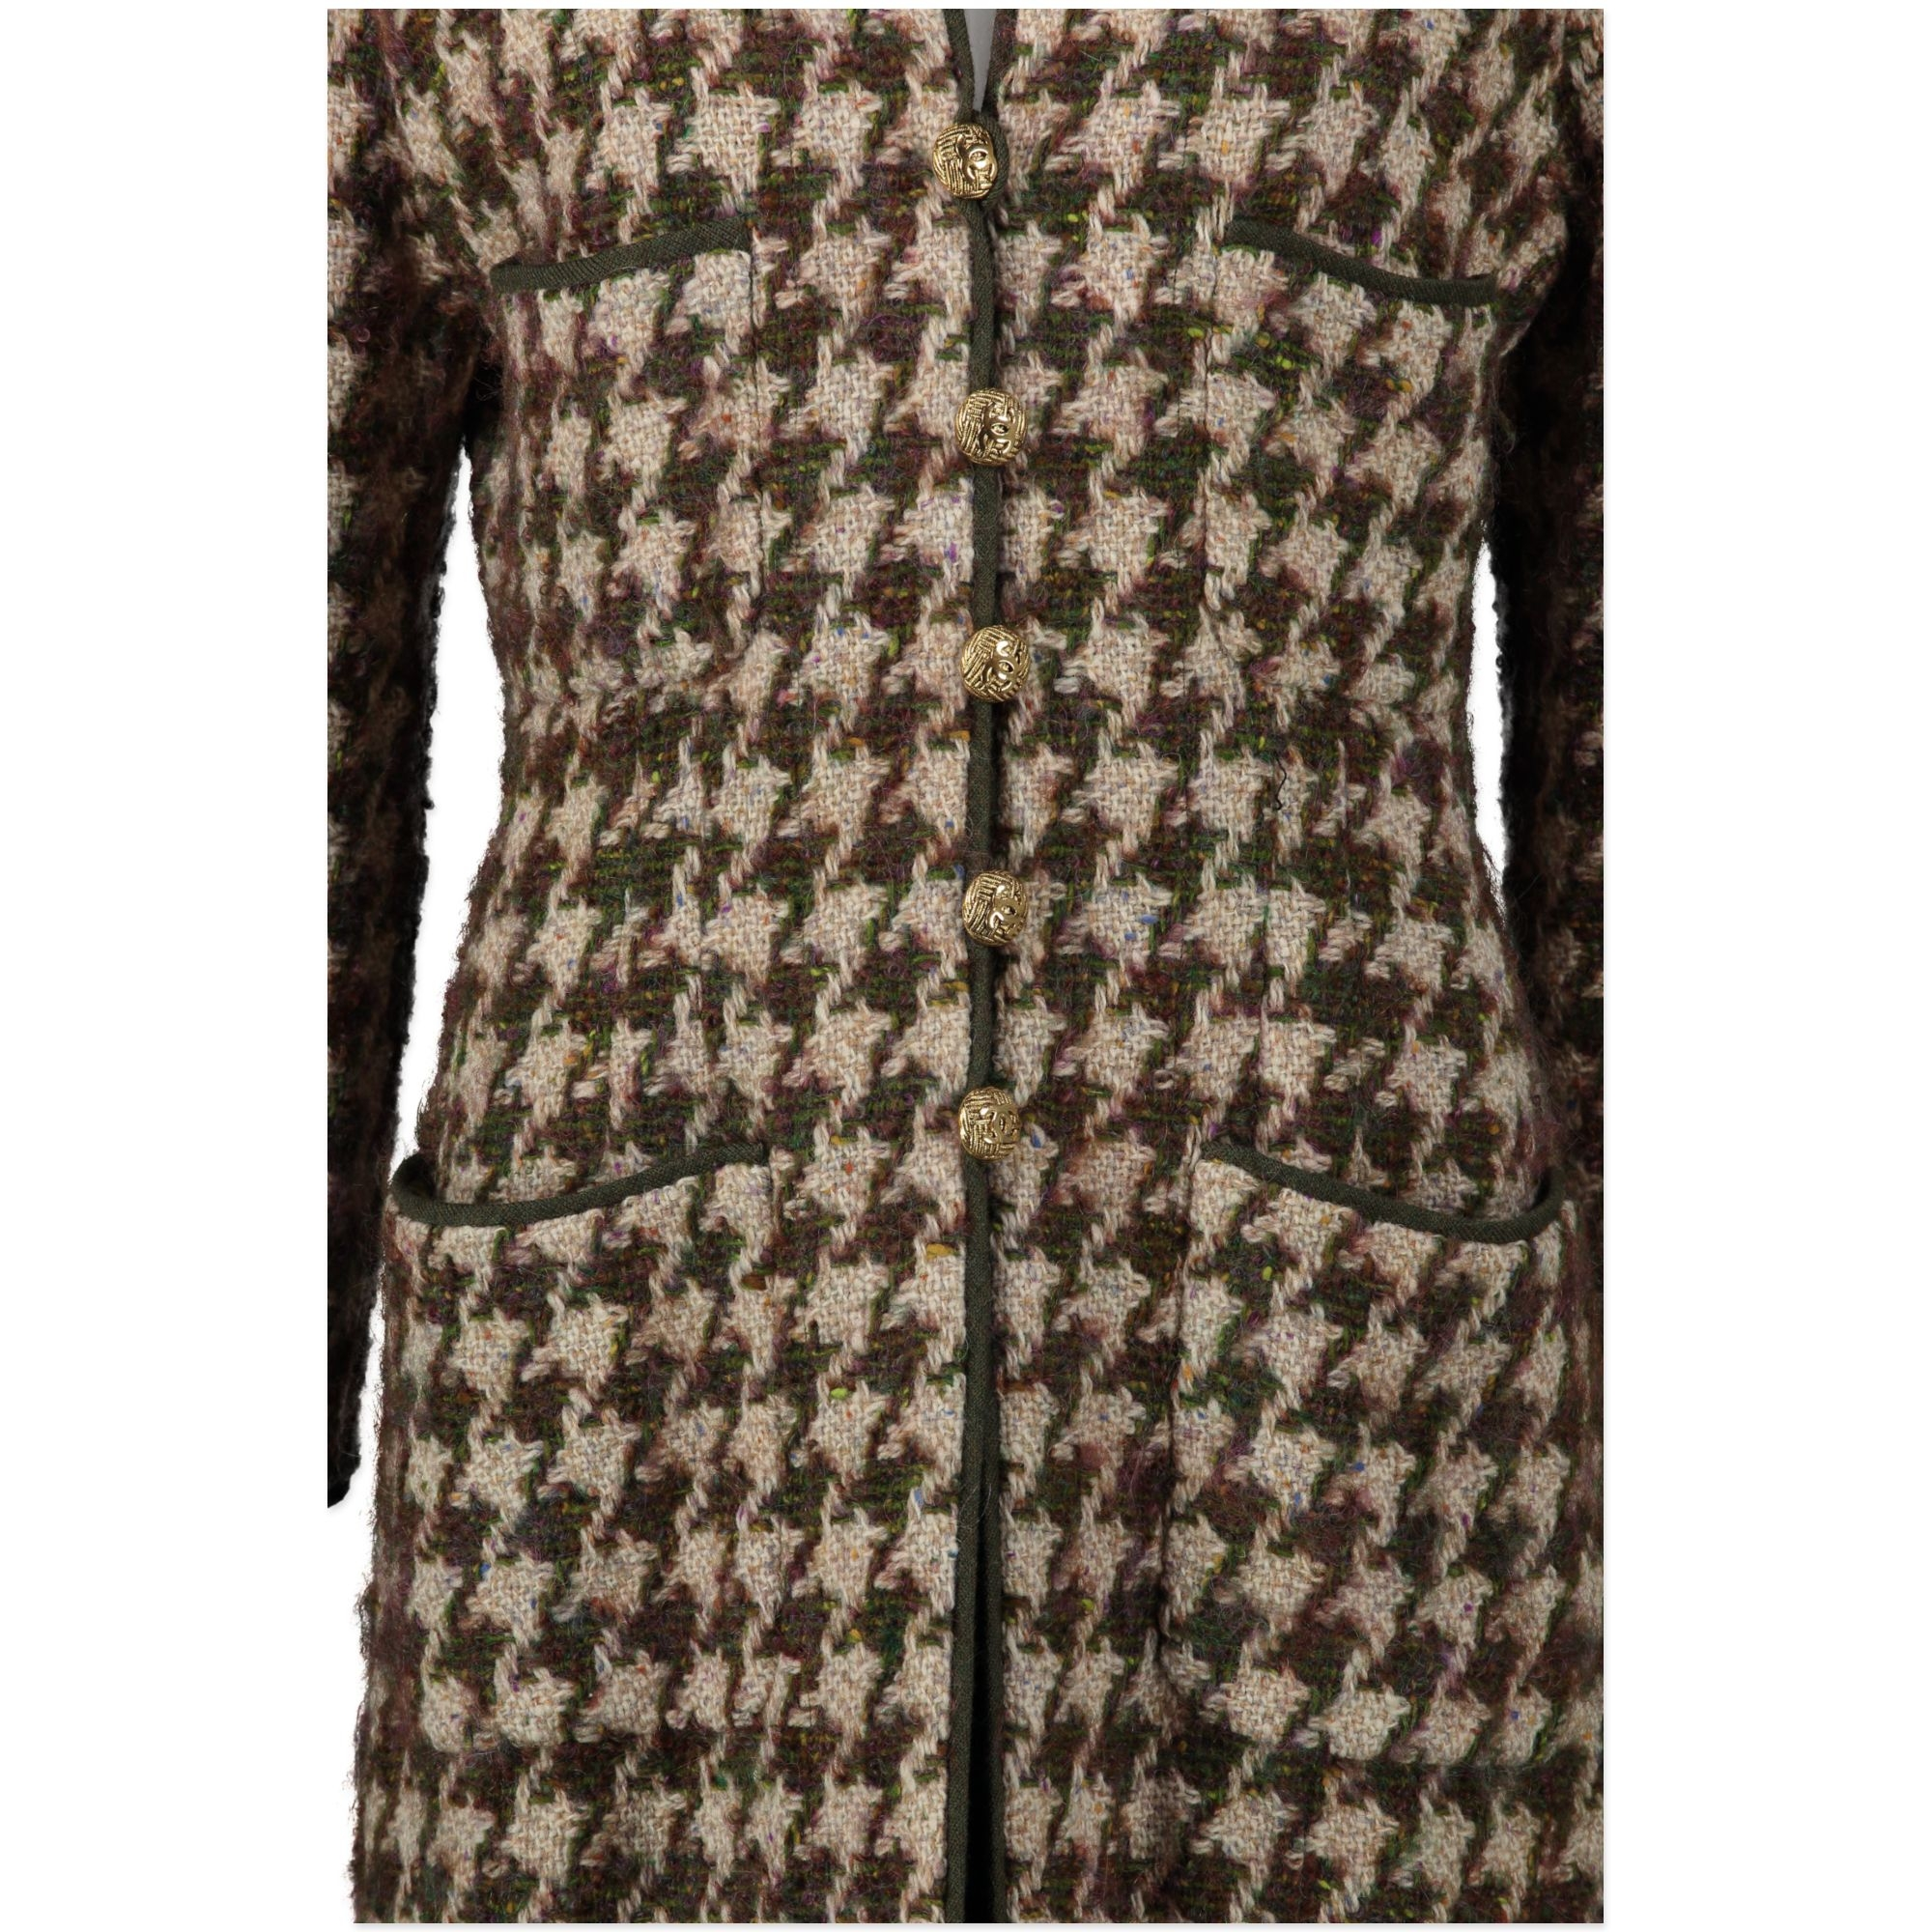 acheter en ligne seconde main Chanel Multicolor Tweed Jacket